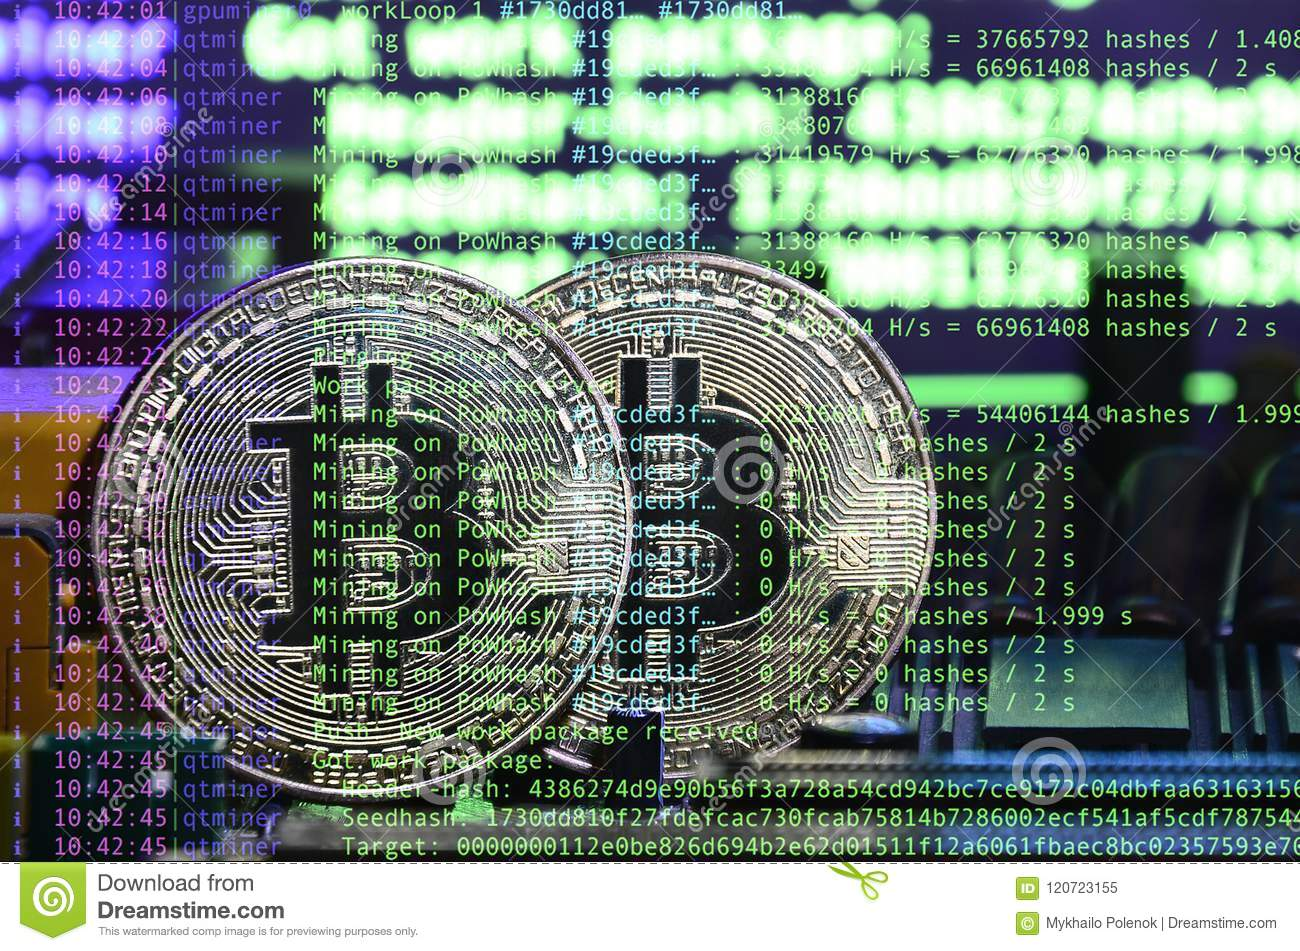 Image of the program code showing the process of mining the crypto currency in the background of the image with bitcoin